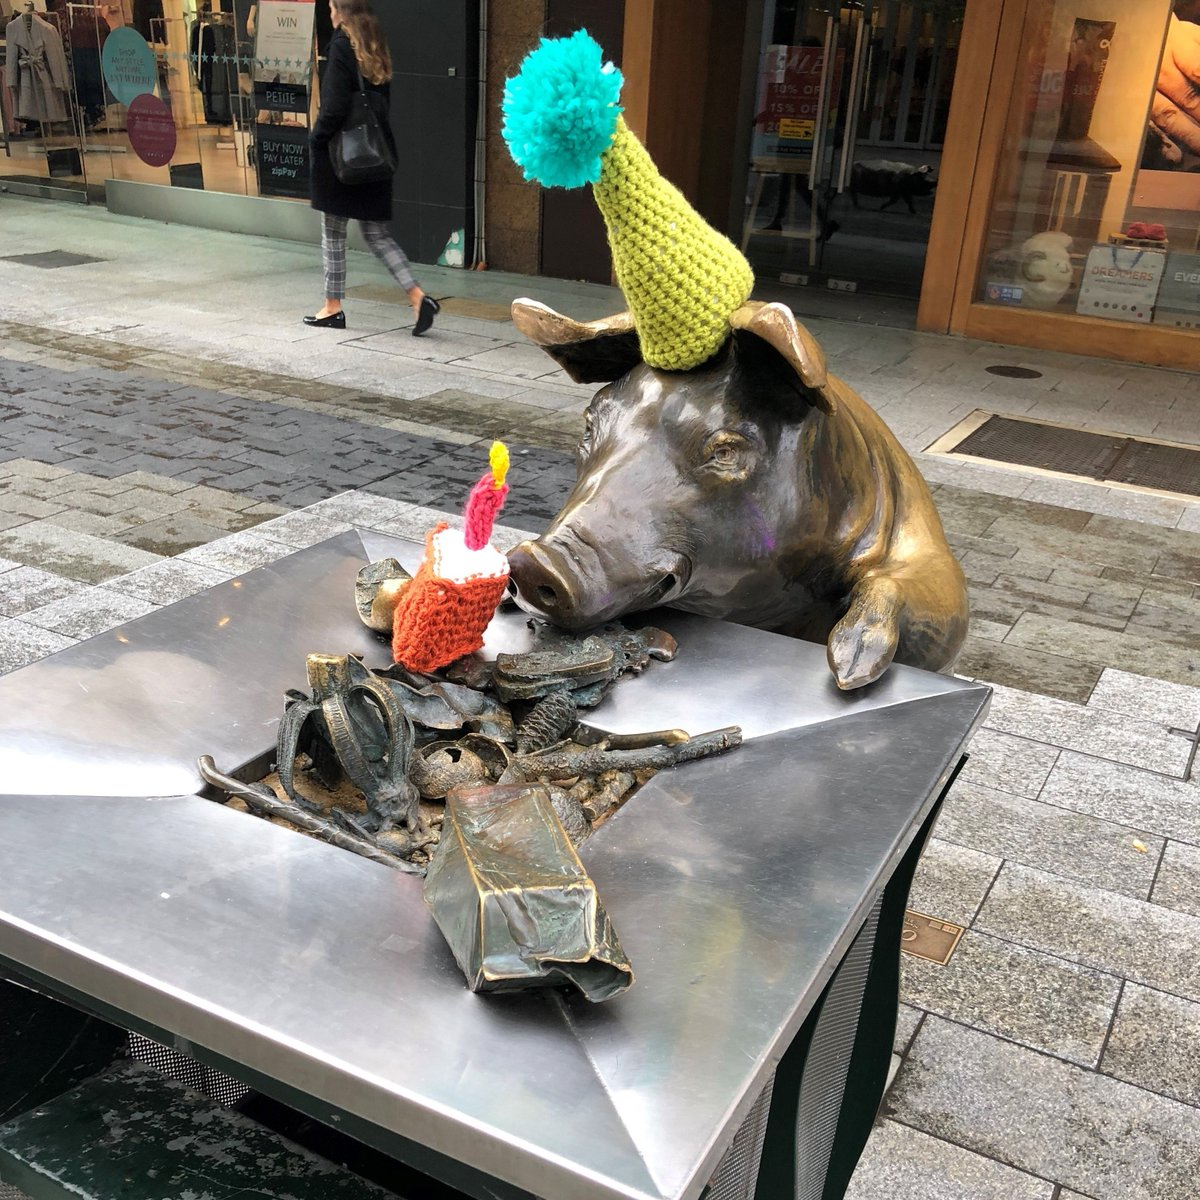 Looks like someone's extending their birthday celebrations today! The @rundlemall pigs were created by Sydney-based sculptor Marguerite Derricourt and unveiled 19 years ago on July 3, 1999.